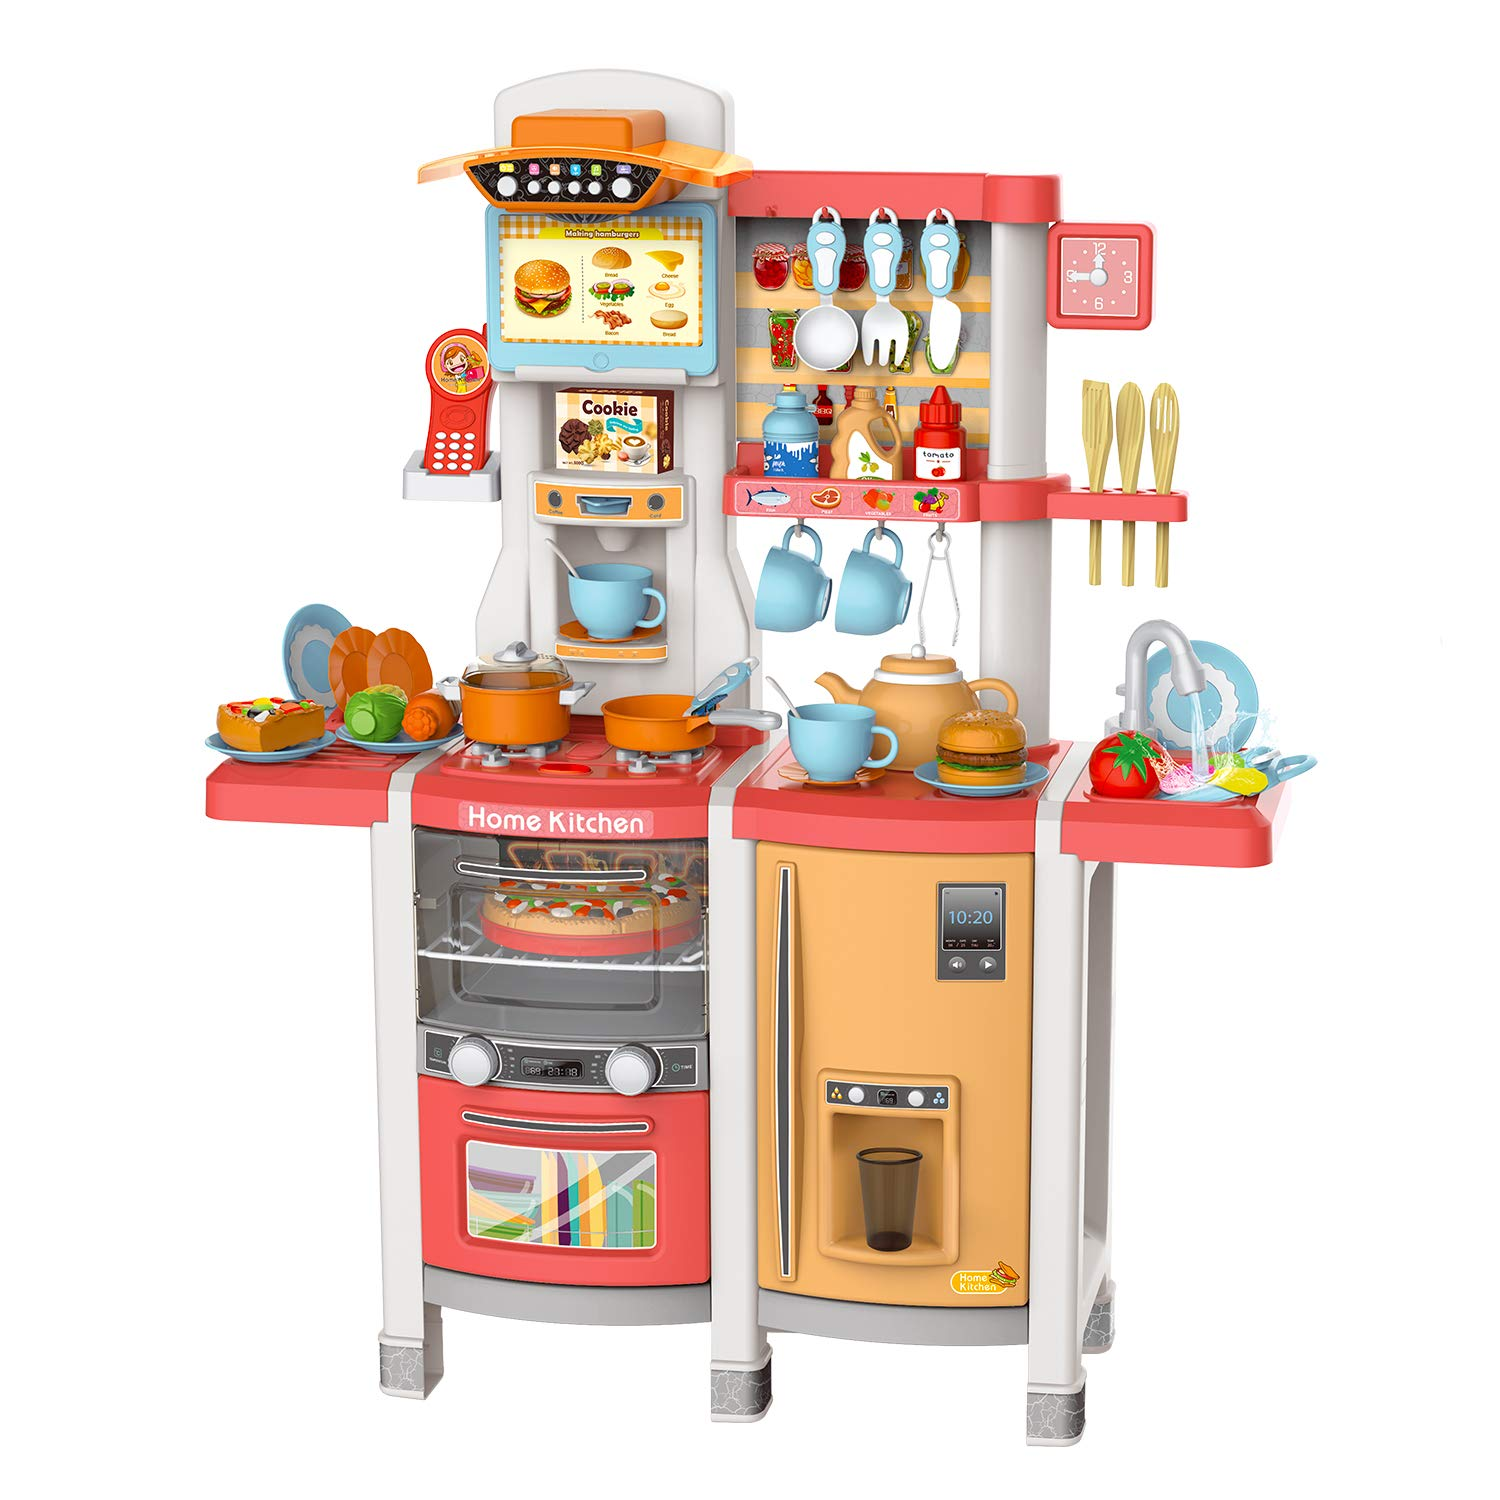 Play Kitchen for Kids Reimotkon Little Cooks Kitchen Toy Accessories Set for Children Kitchen Play Set with Realistic Lights /& Sounds